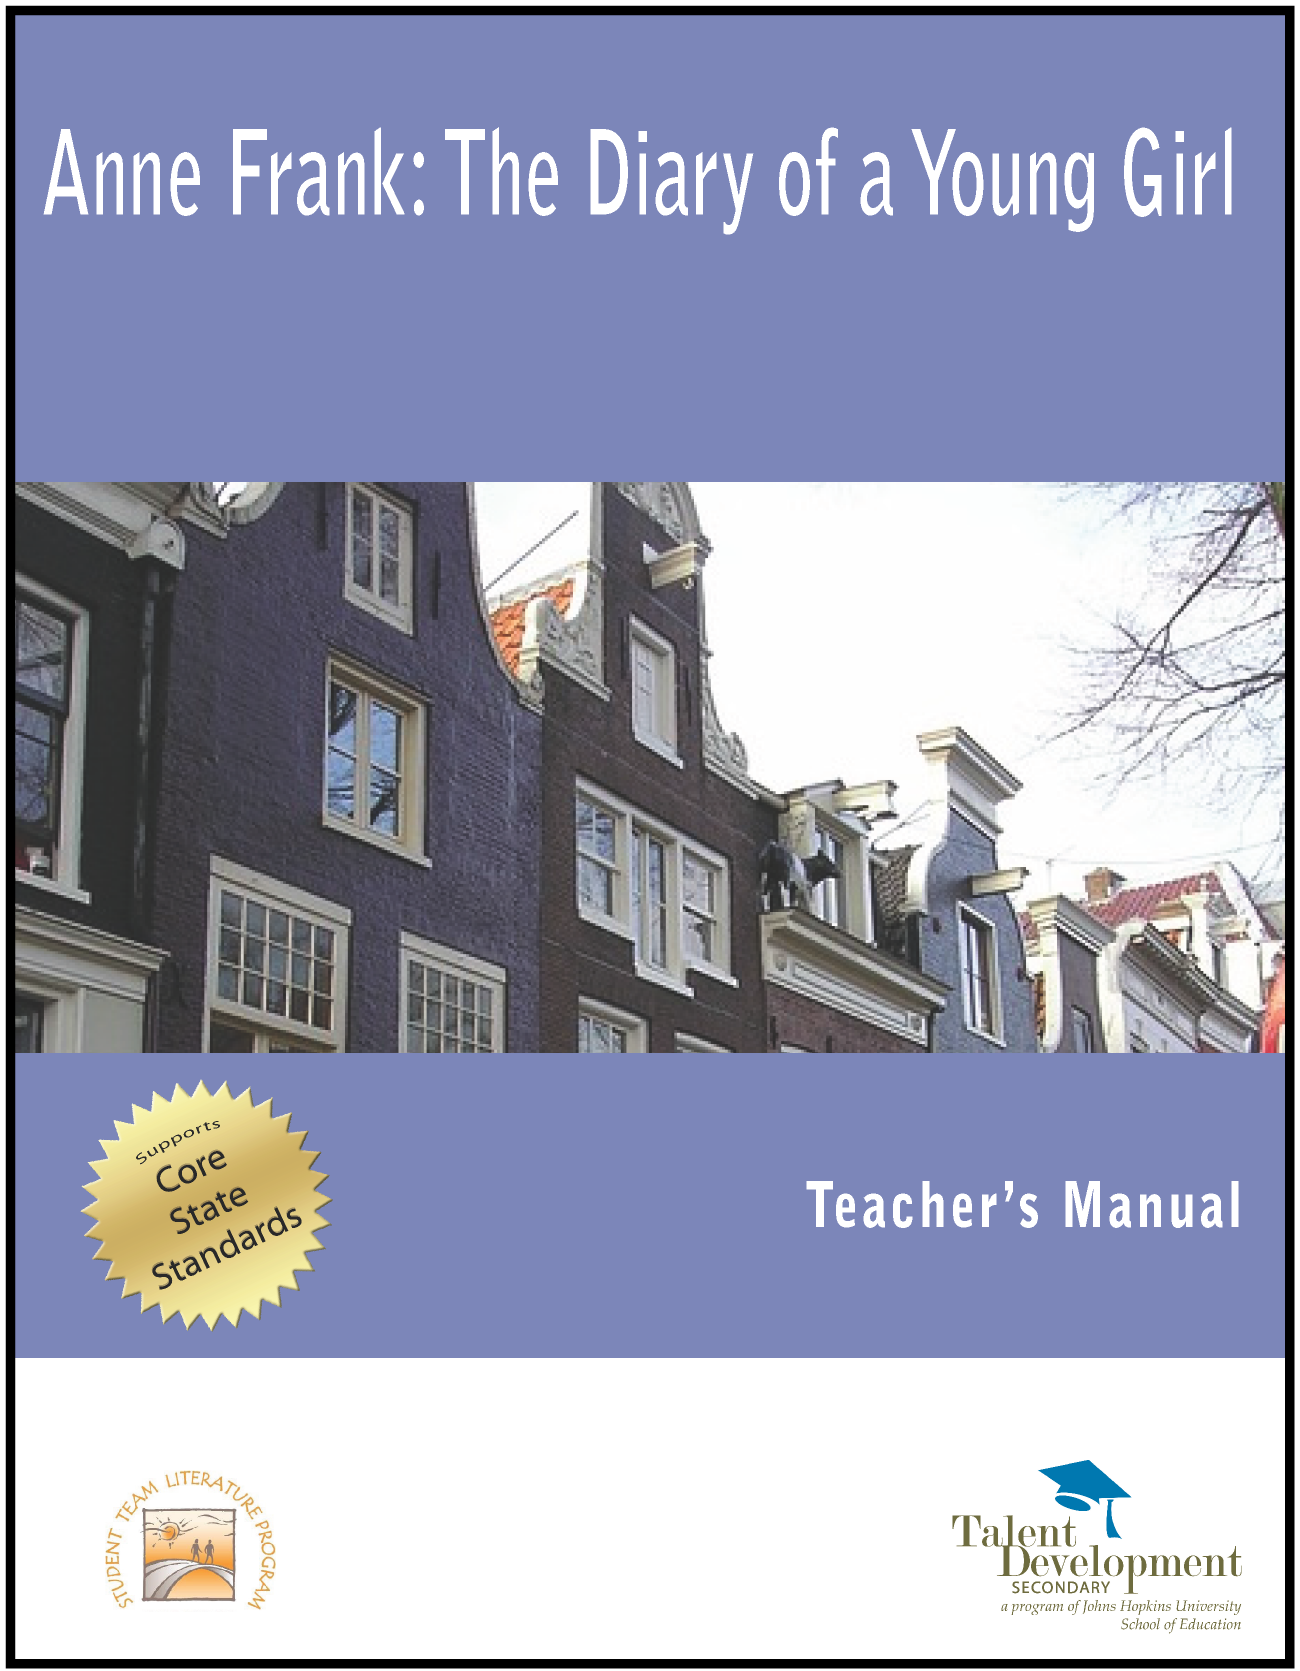 anne-frank-cover-image-01